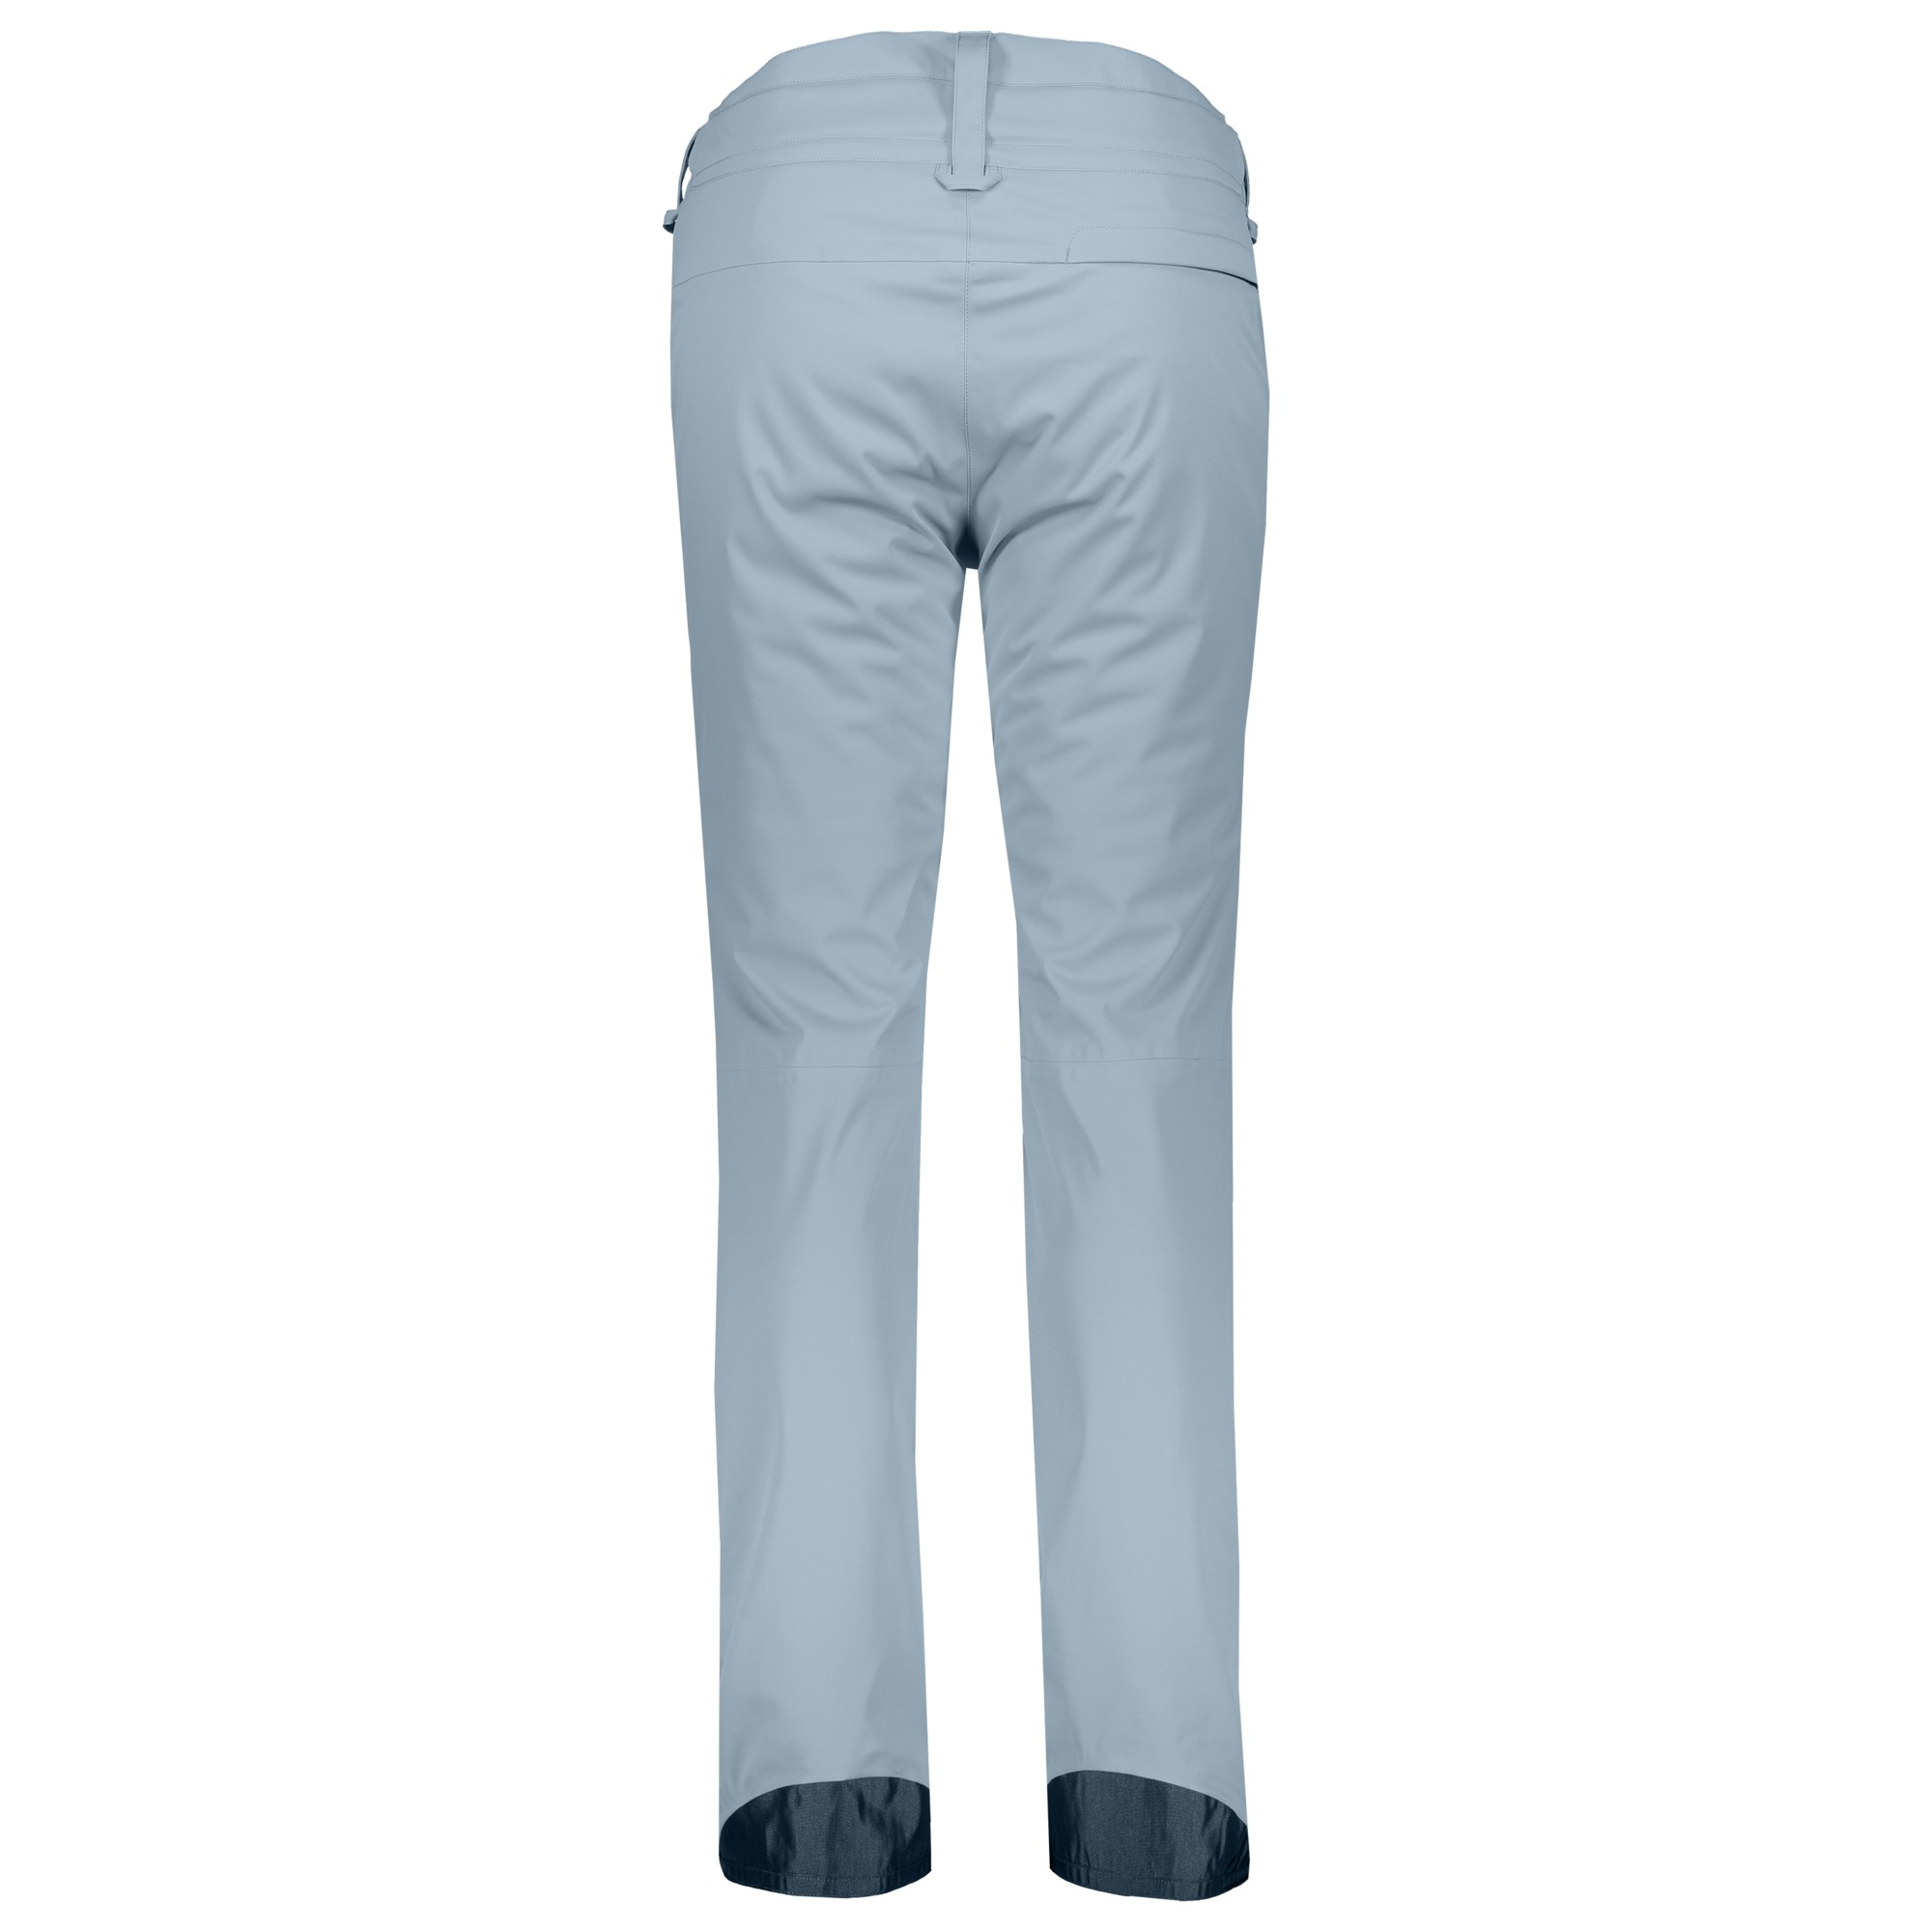 SCOTT Ultimate Dryo 10 Women's Pant